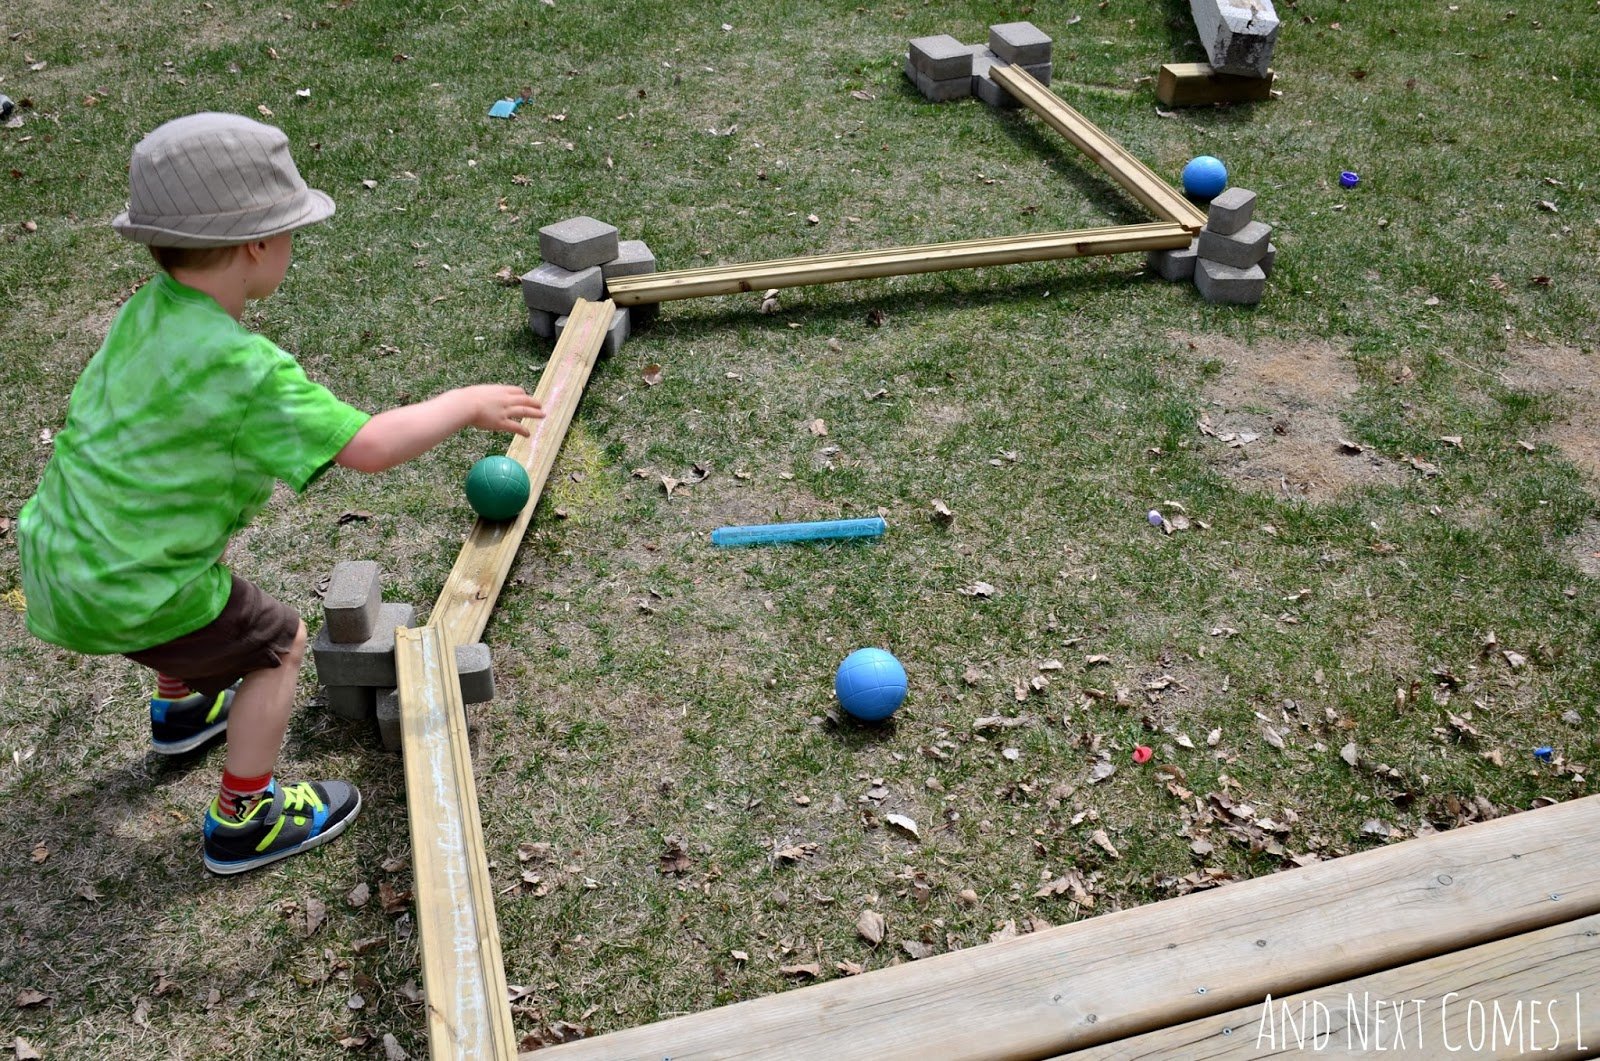 DIY outdoor ball run for kids: building with loose parts in the backyard from And Next Comes L